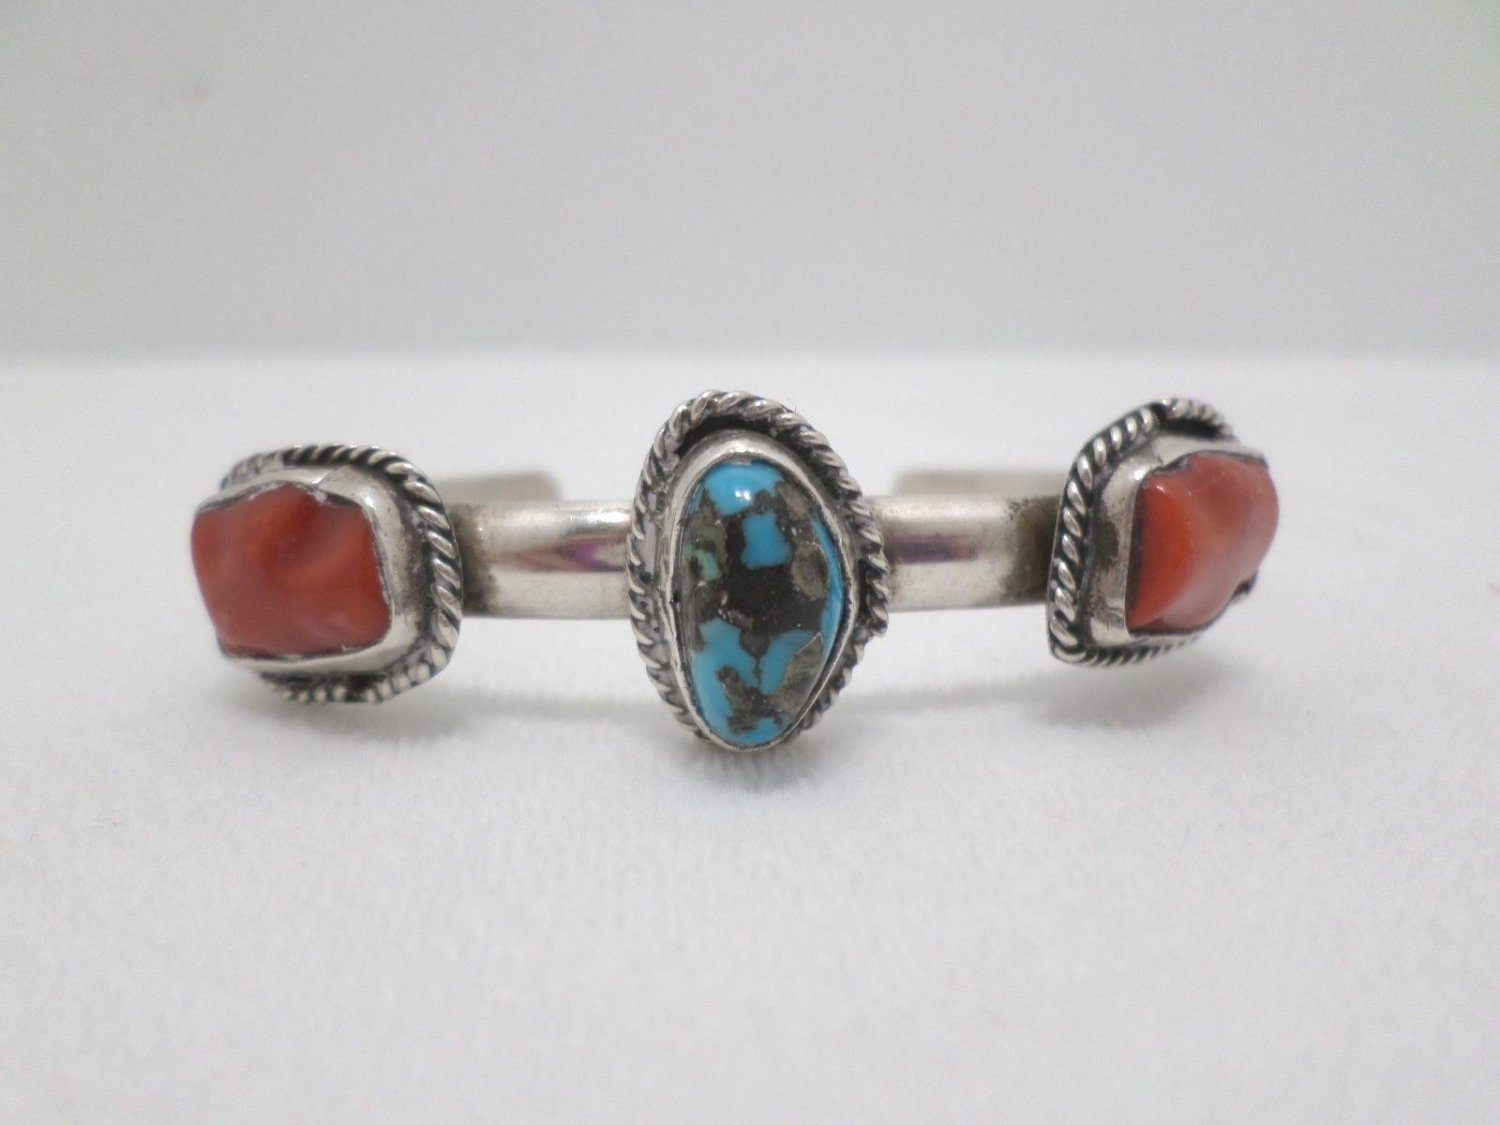 Cuff Bracelet Sterling Silver with Natural Red Coral and Turquoise Stones